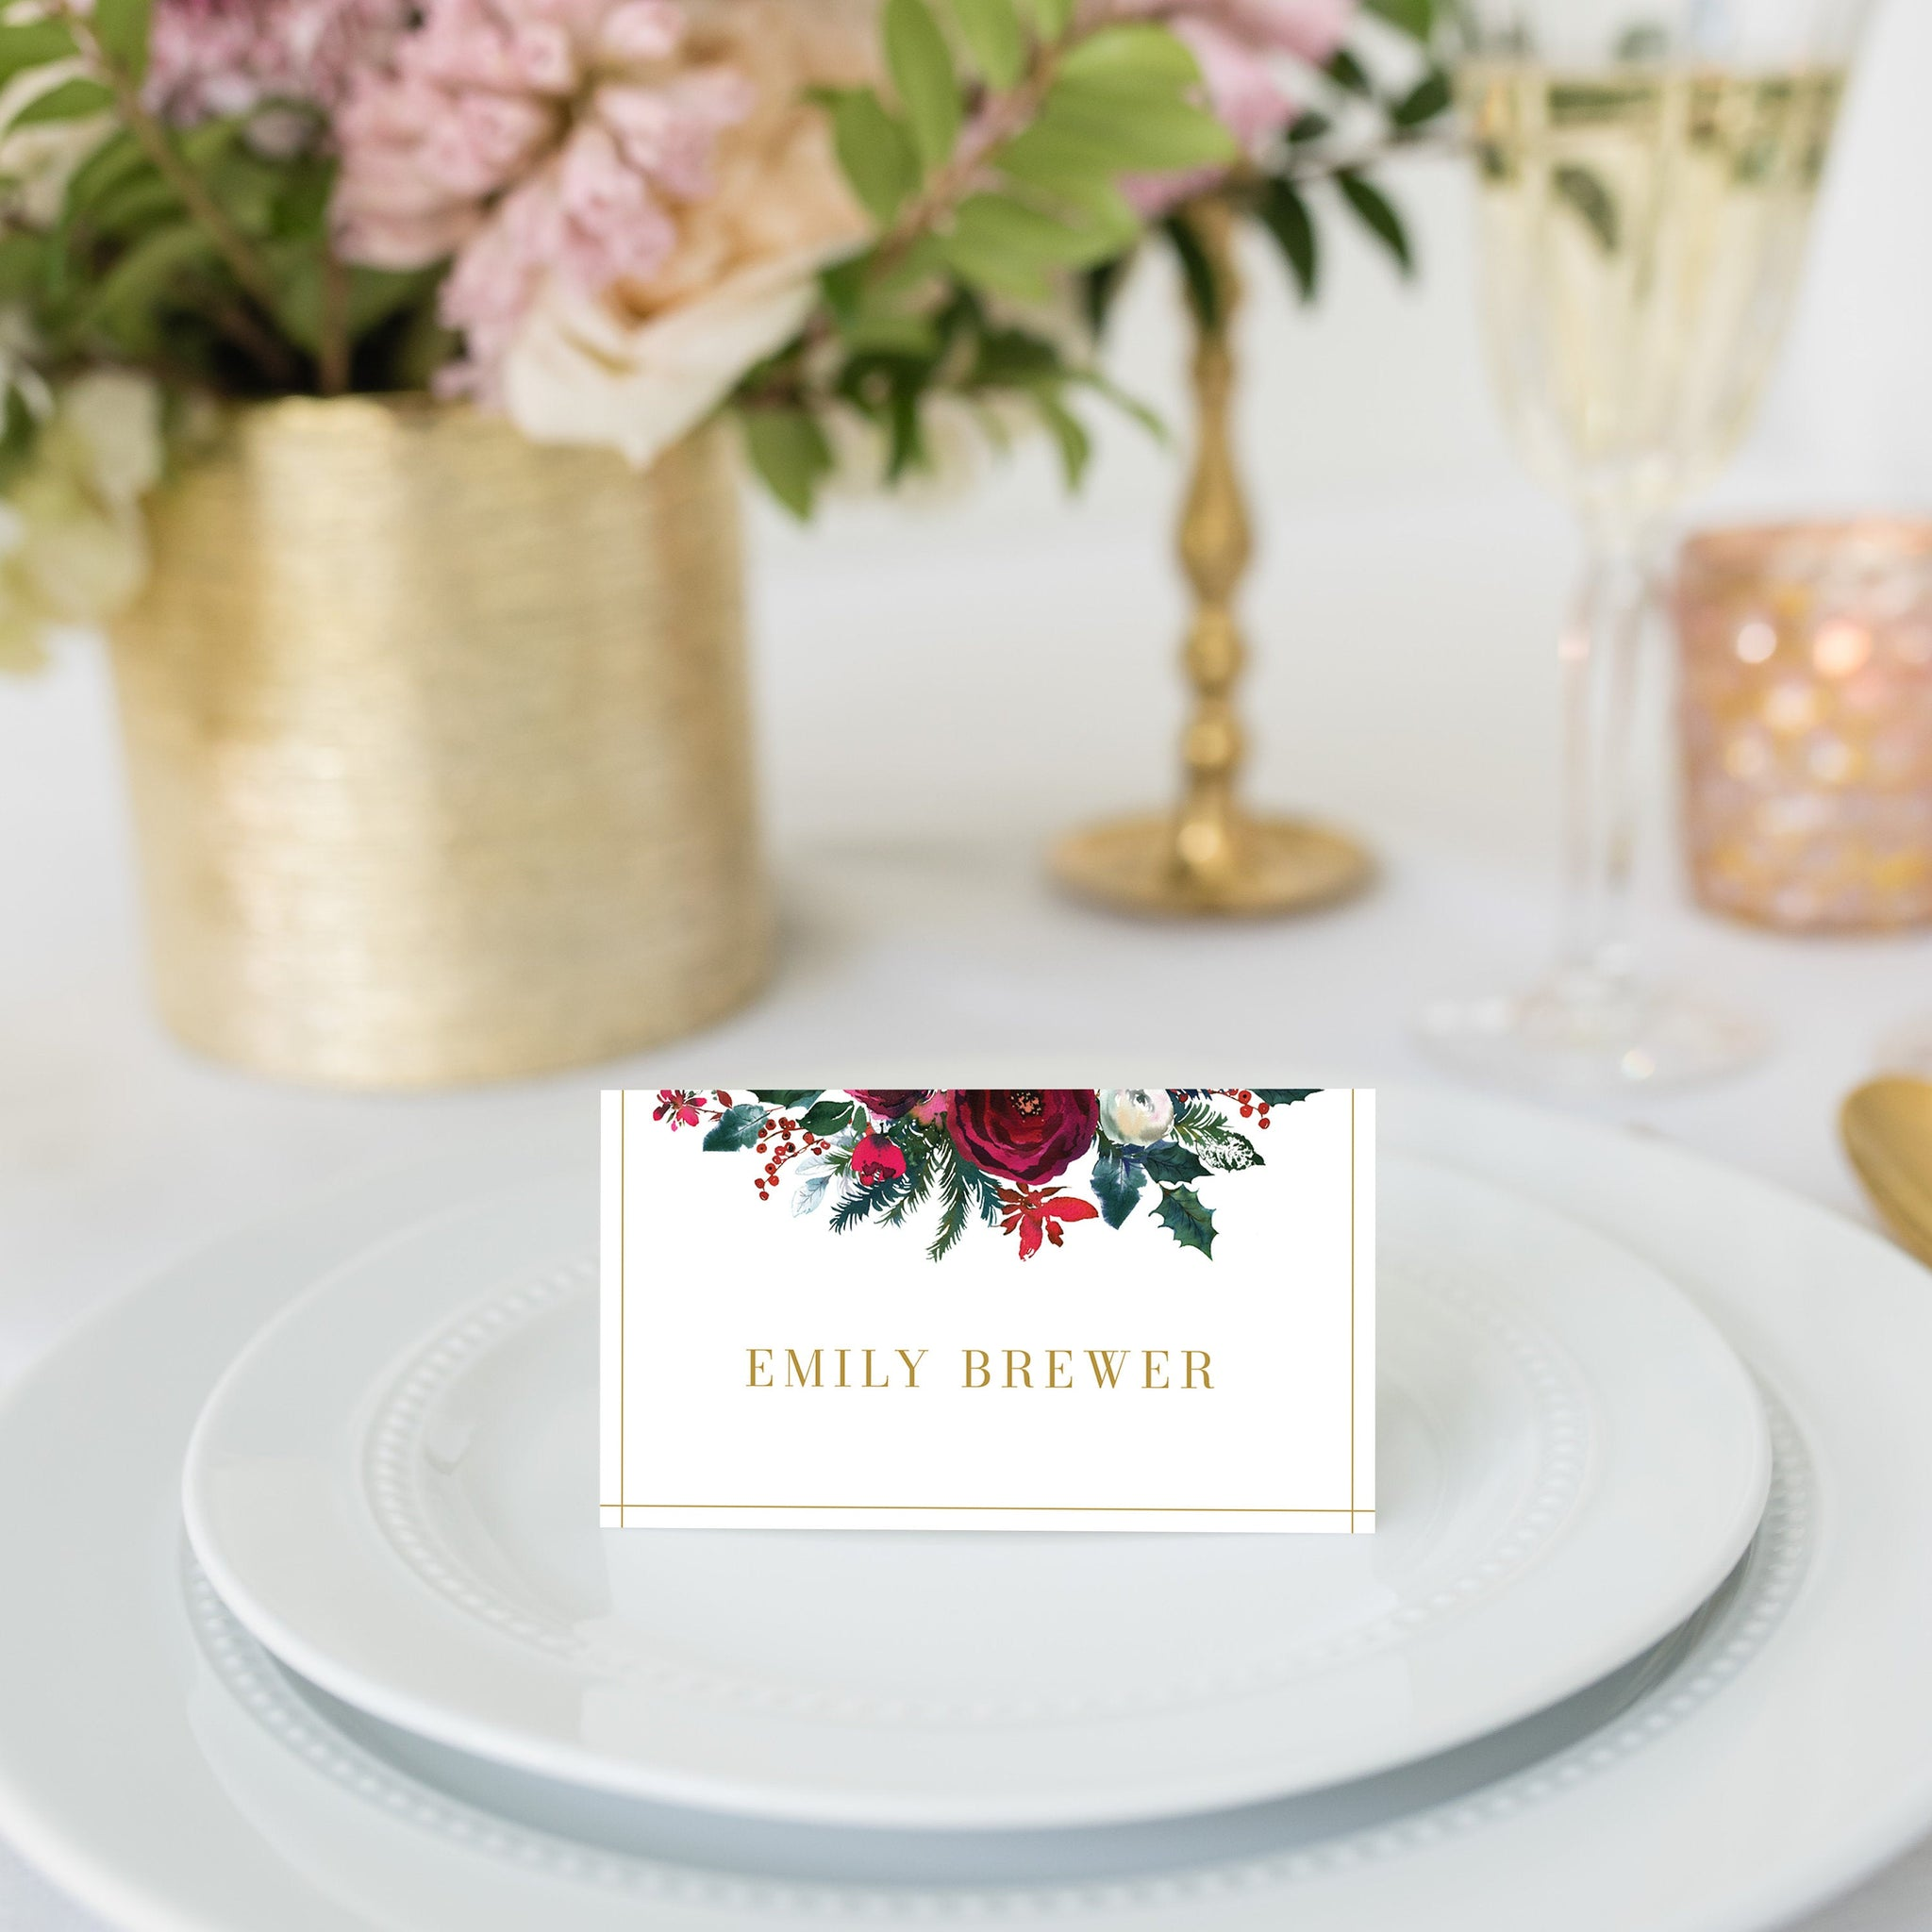 Christmas Place Card Template, Christmas Table Decor, Christmas Table Decorations, Christmas Dinner Decor, Editable DIGITAL DOWNLOAD - CG100